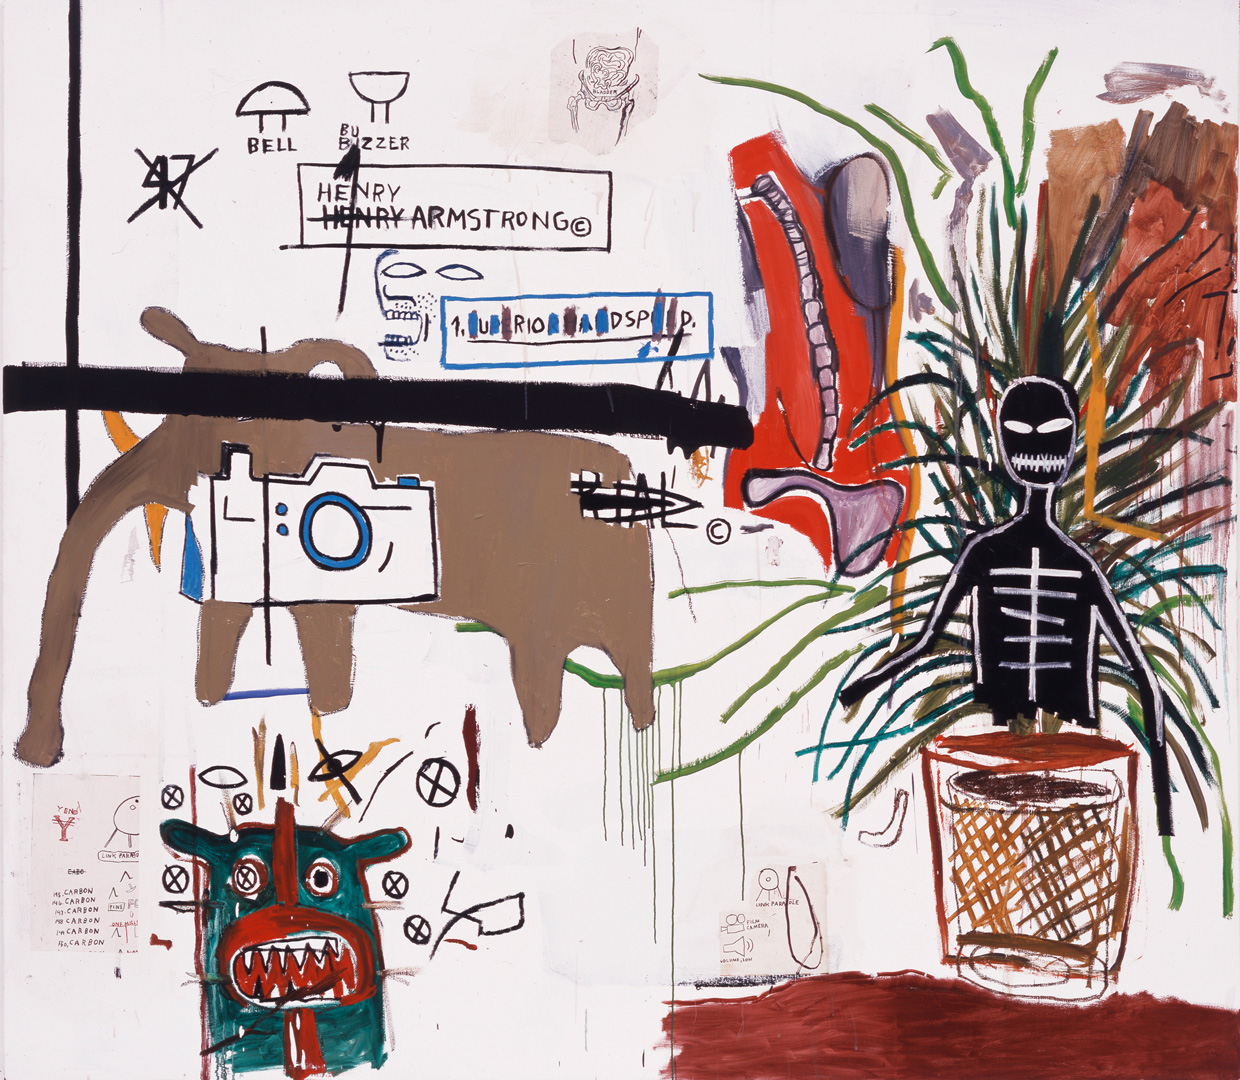 Jean‐Michel Basquiat - Wicker, 1984, acrylic, oilstick and xerox collage on canvas